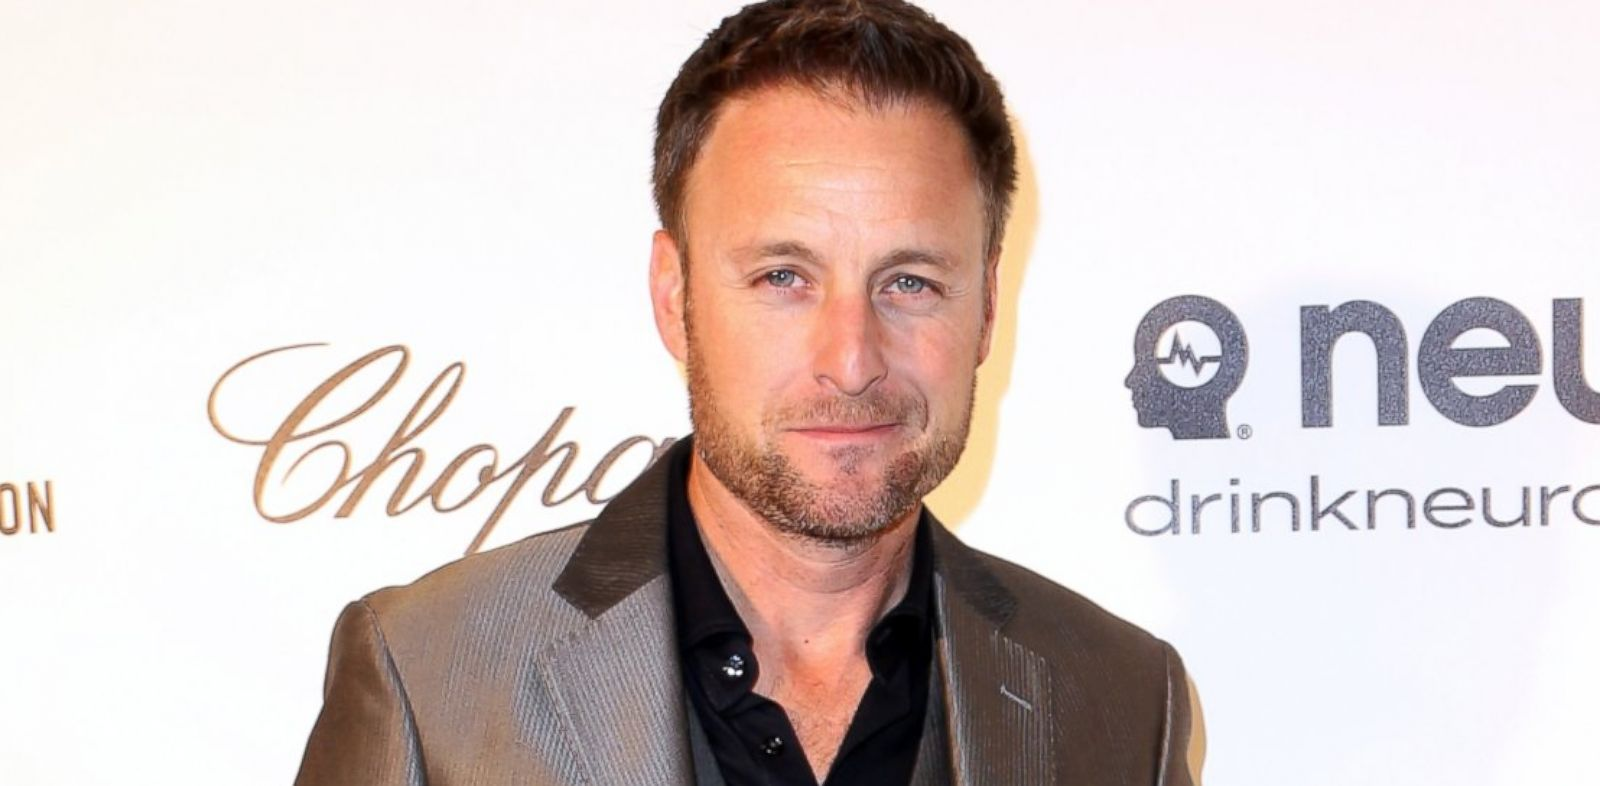 PHOTO: Chris Harrison attends the 22nd Annual Elton John AIDS Foundations Oscar Viewing Party, March 2, 2014, in Los Angeles.